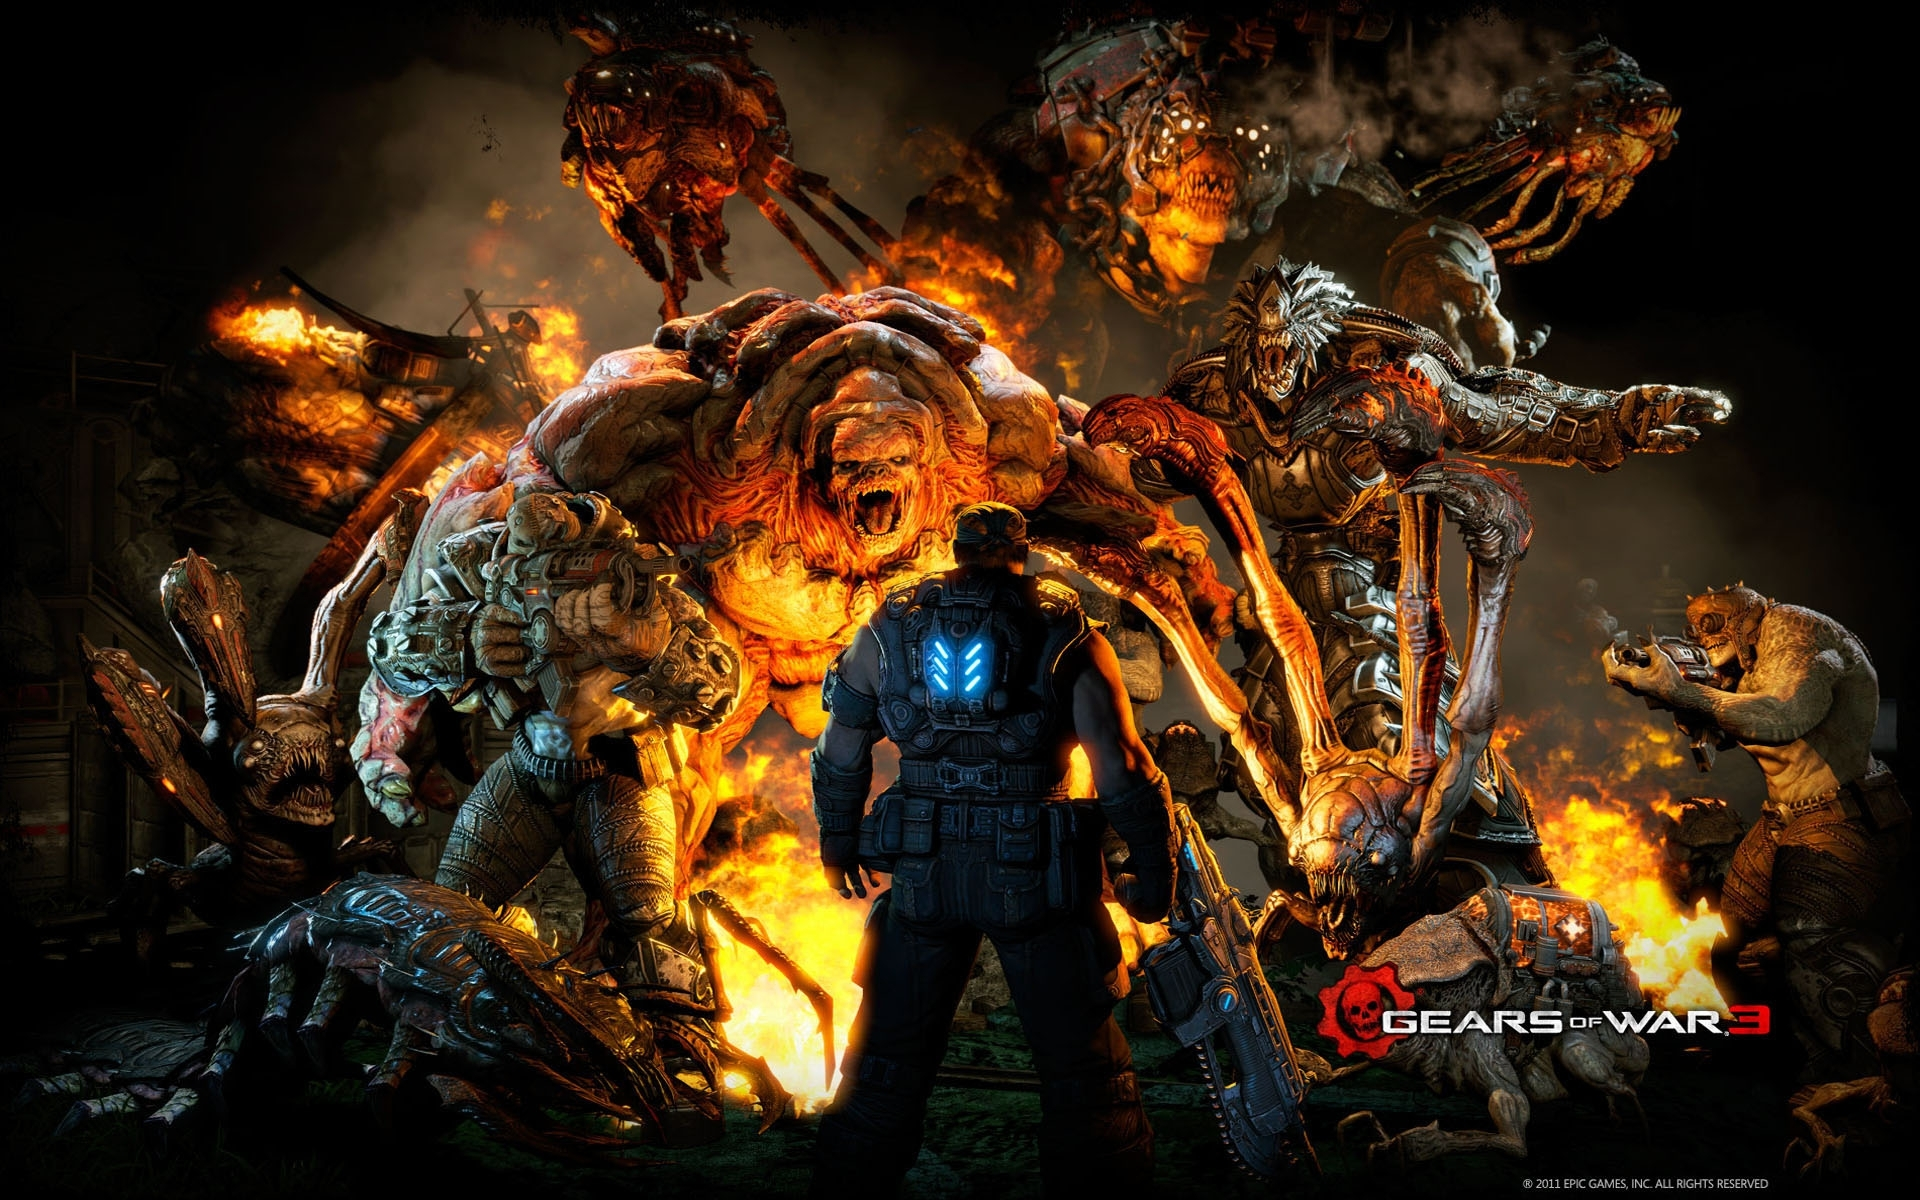 gears of war 3 mission wallpapers | hd wallpapers | id #10418